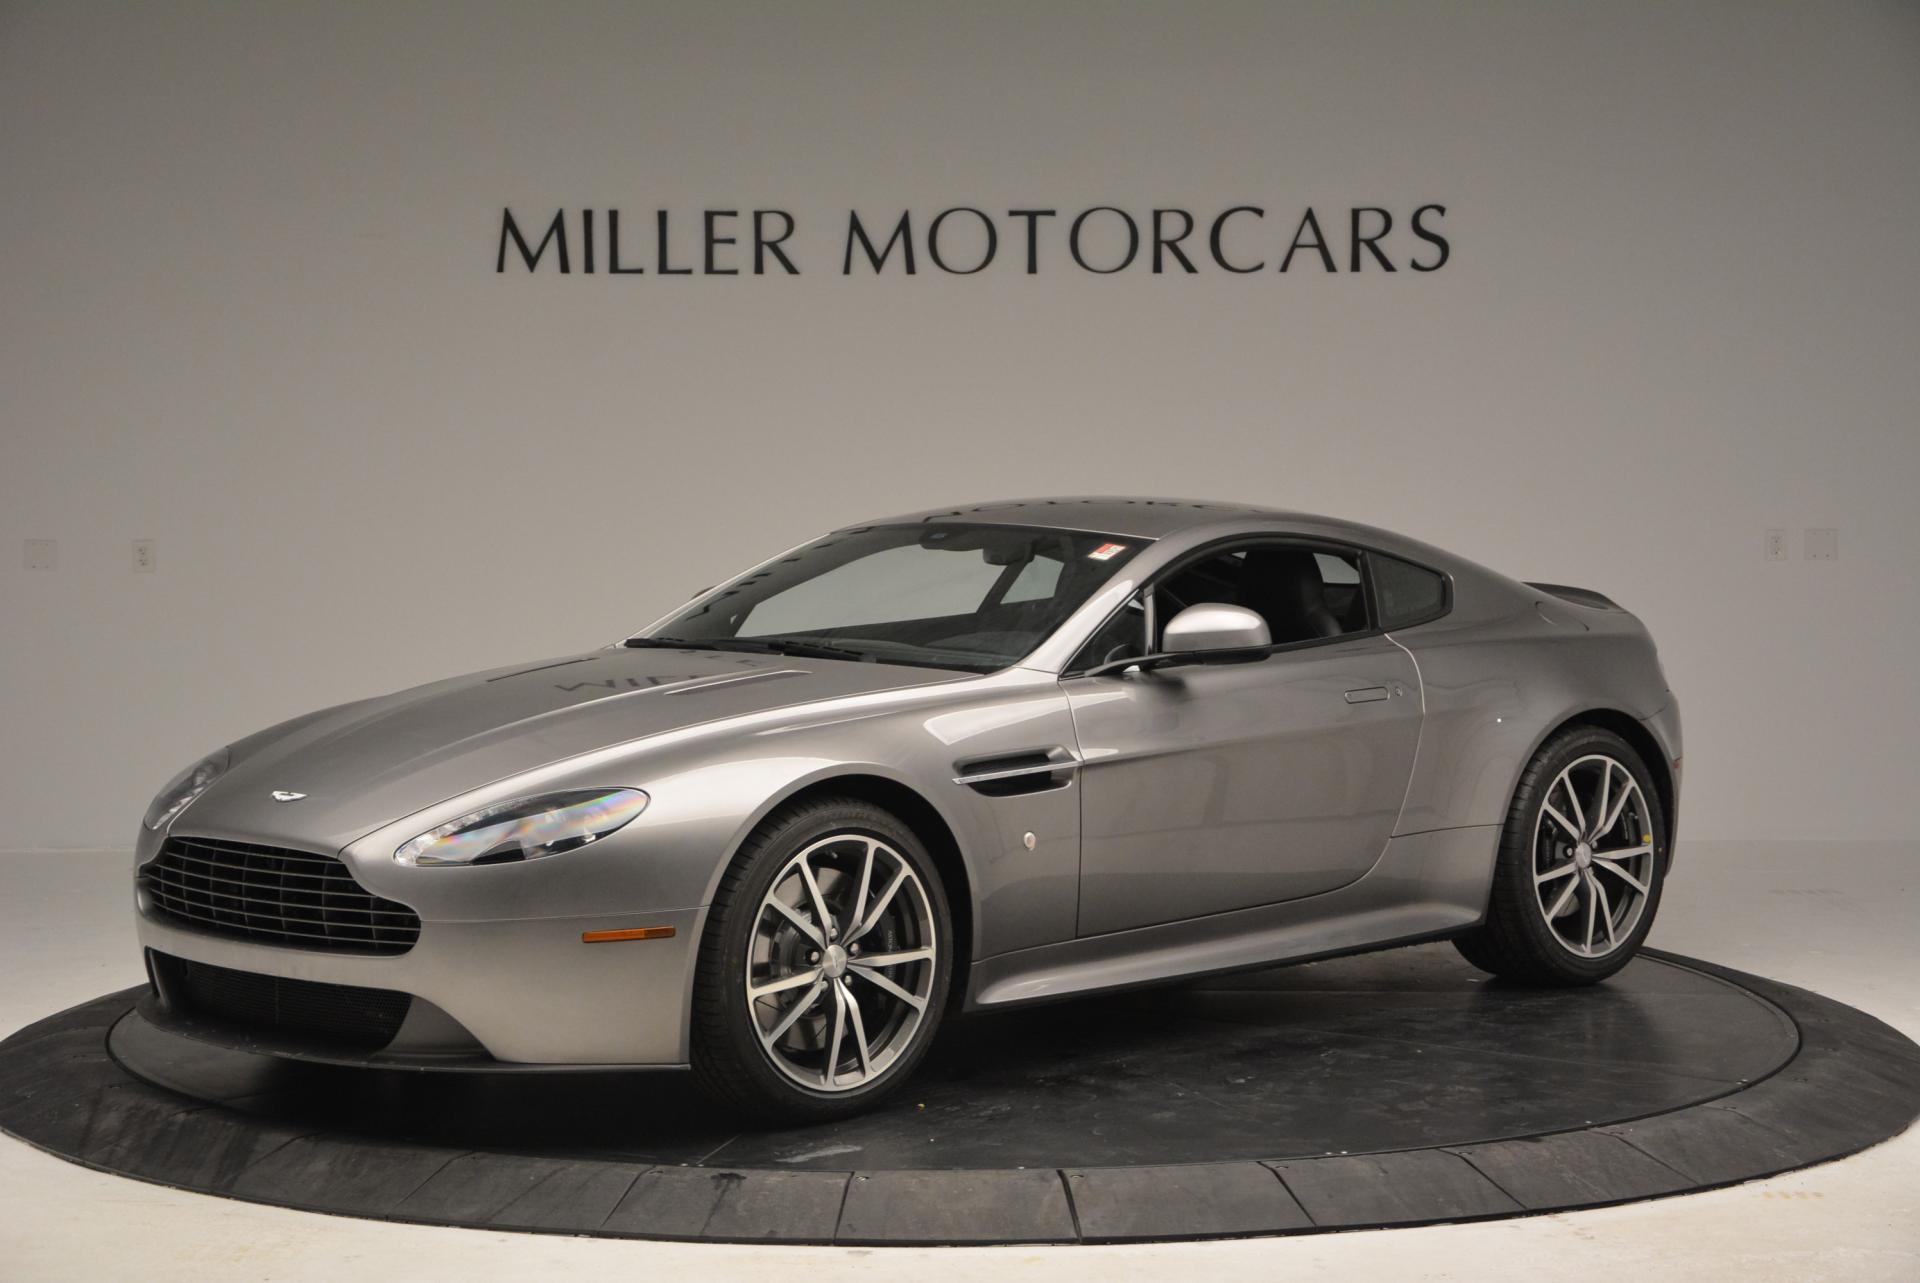 Used 2016 Aston Martin V8 Vantage GT Coupe for sale Sold at Aston Martin of Greenwich in Greenwich CT 06830 1